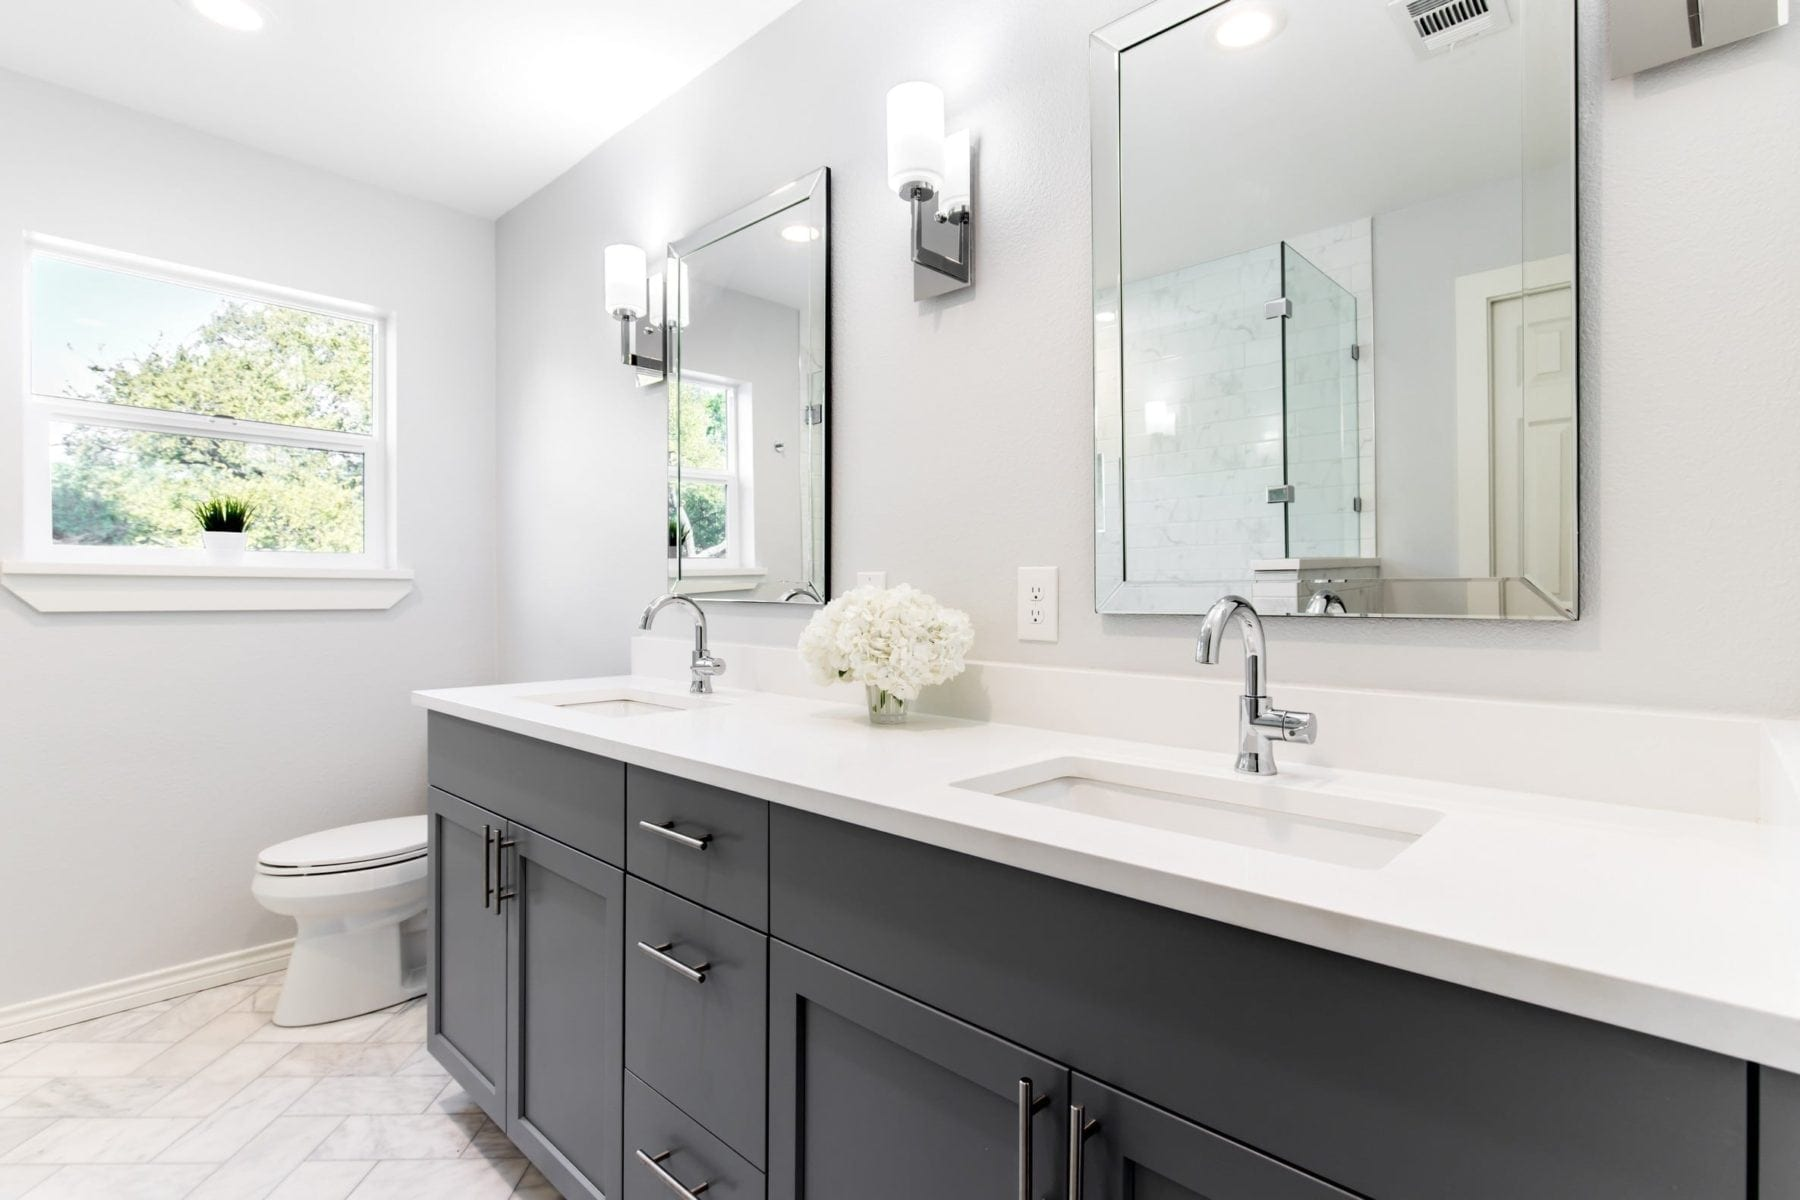 Lochwood Master Bathroom Remodel | Renowned Renovation